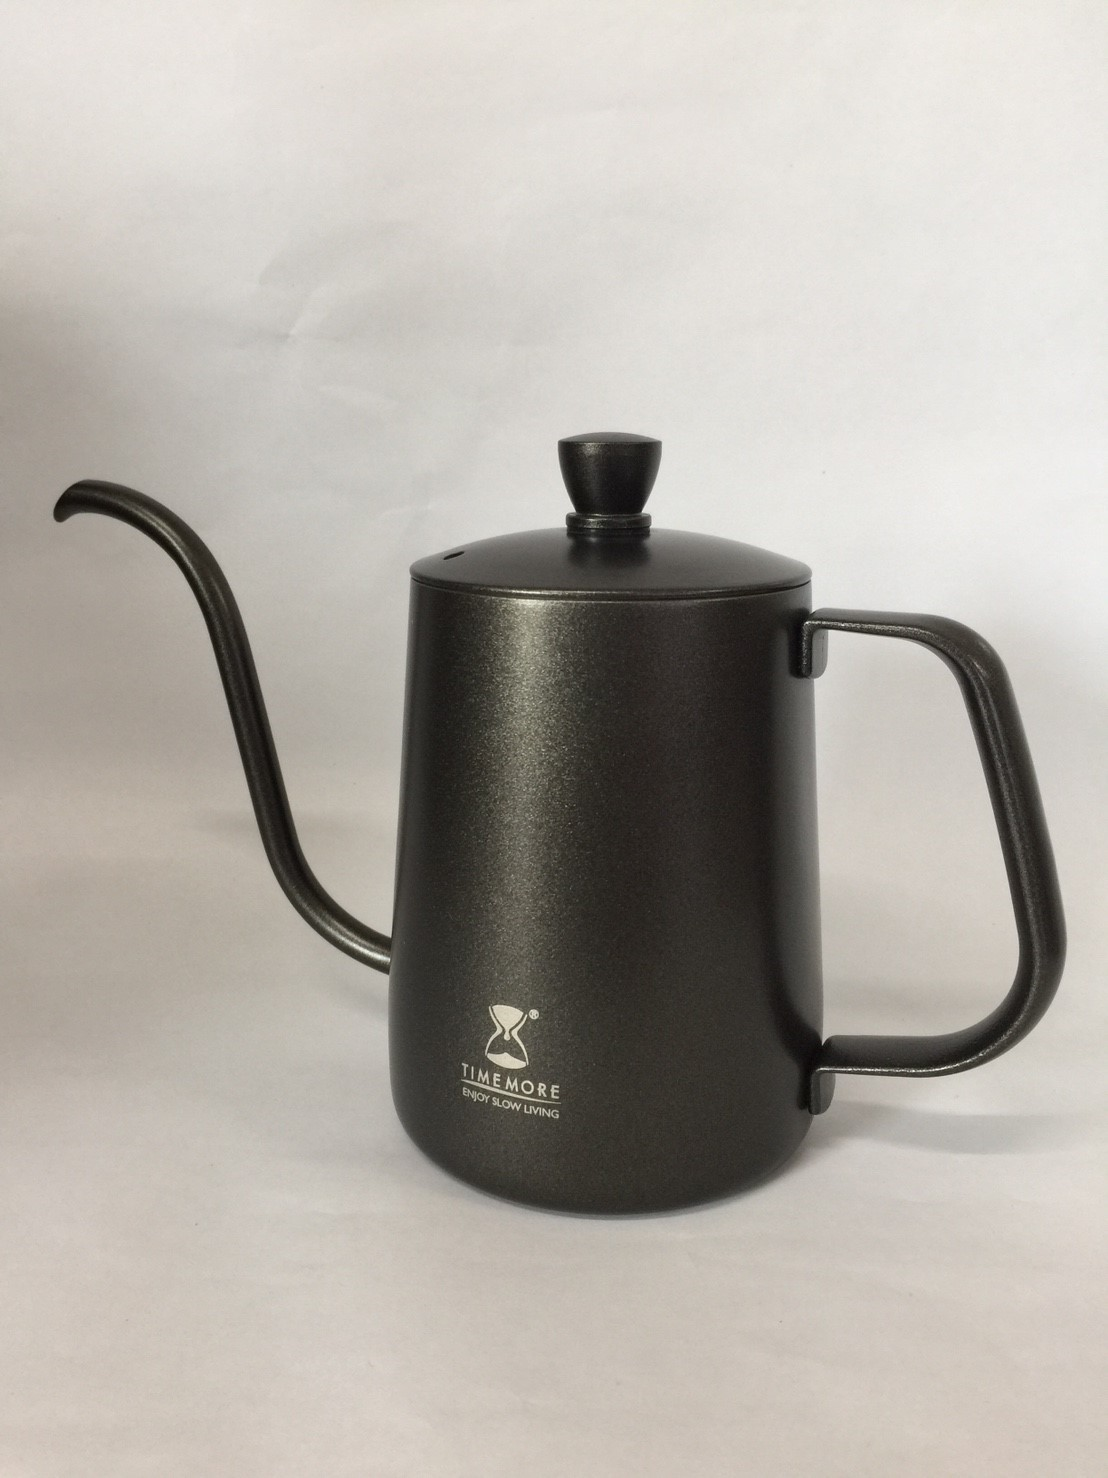 Timemore Kettle 0.6 L